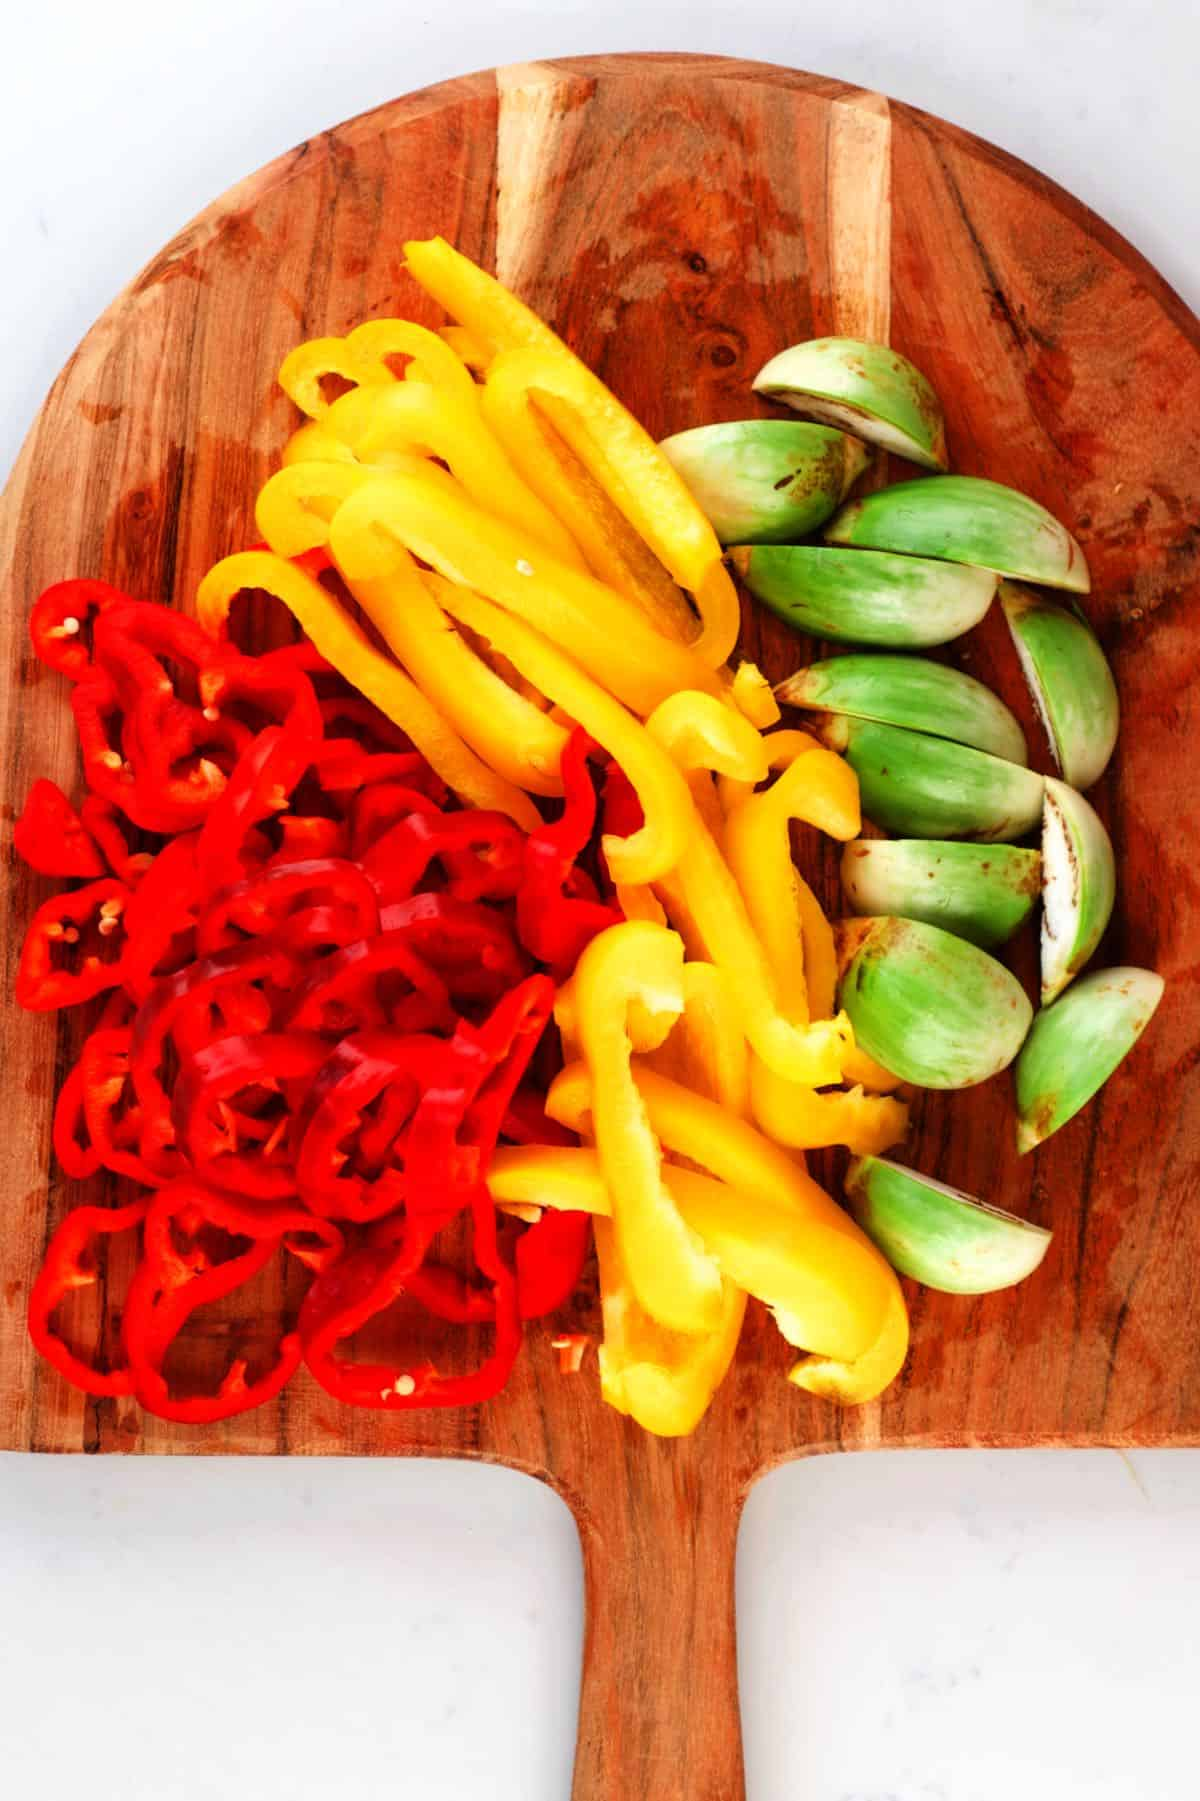 Chopped peppers and Thai aubergine